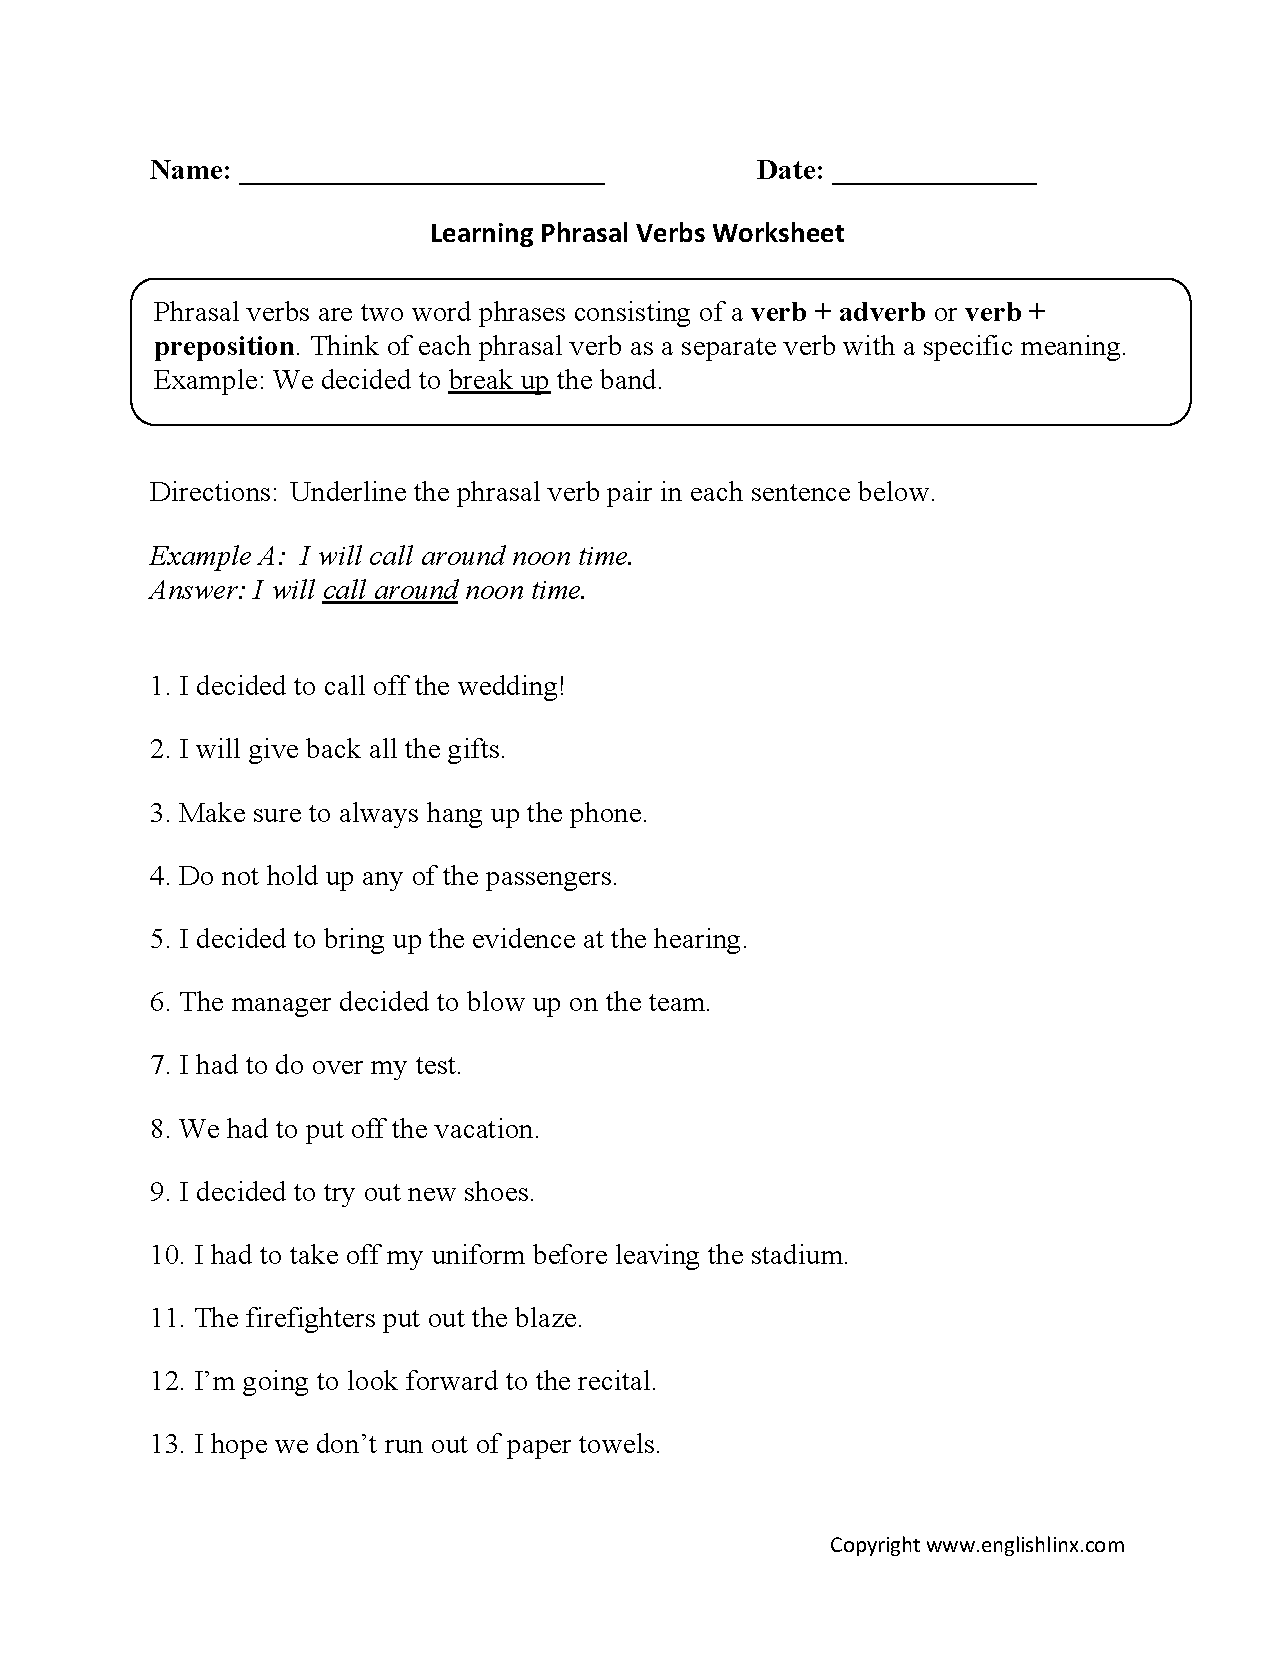 Phrasal Verbs Worksheets